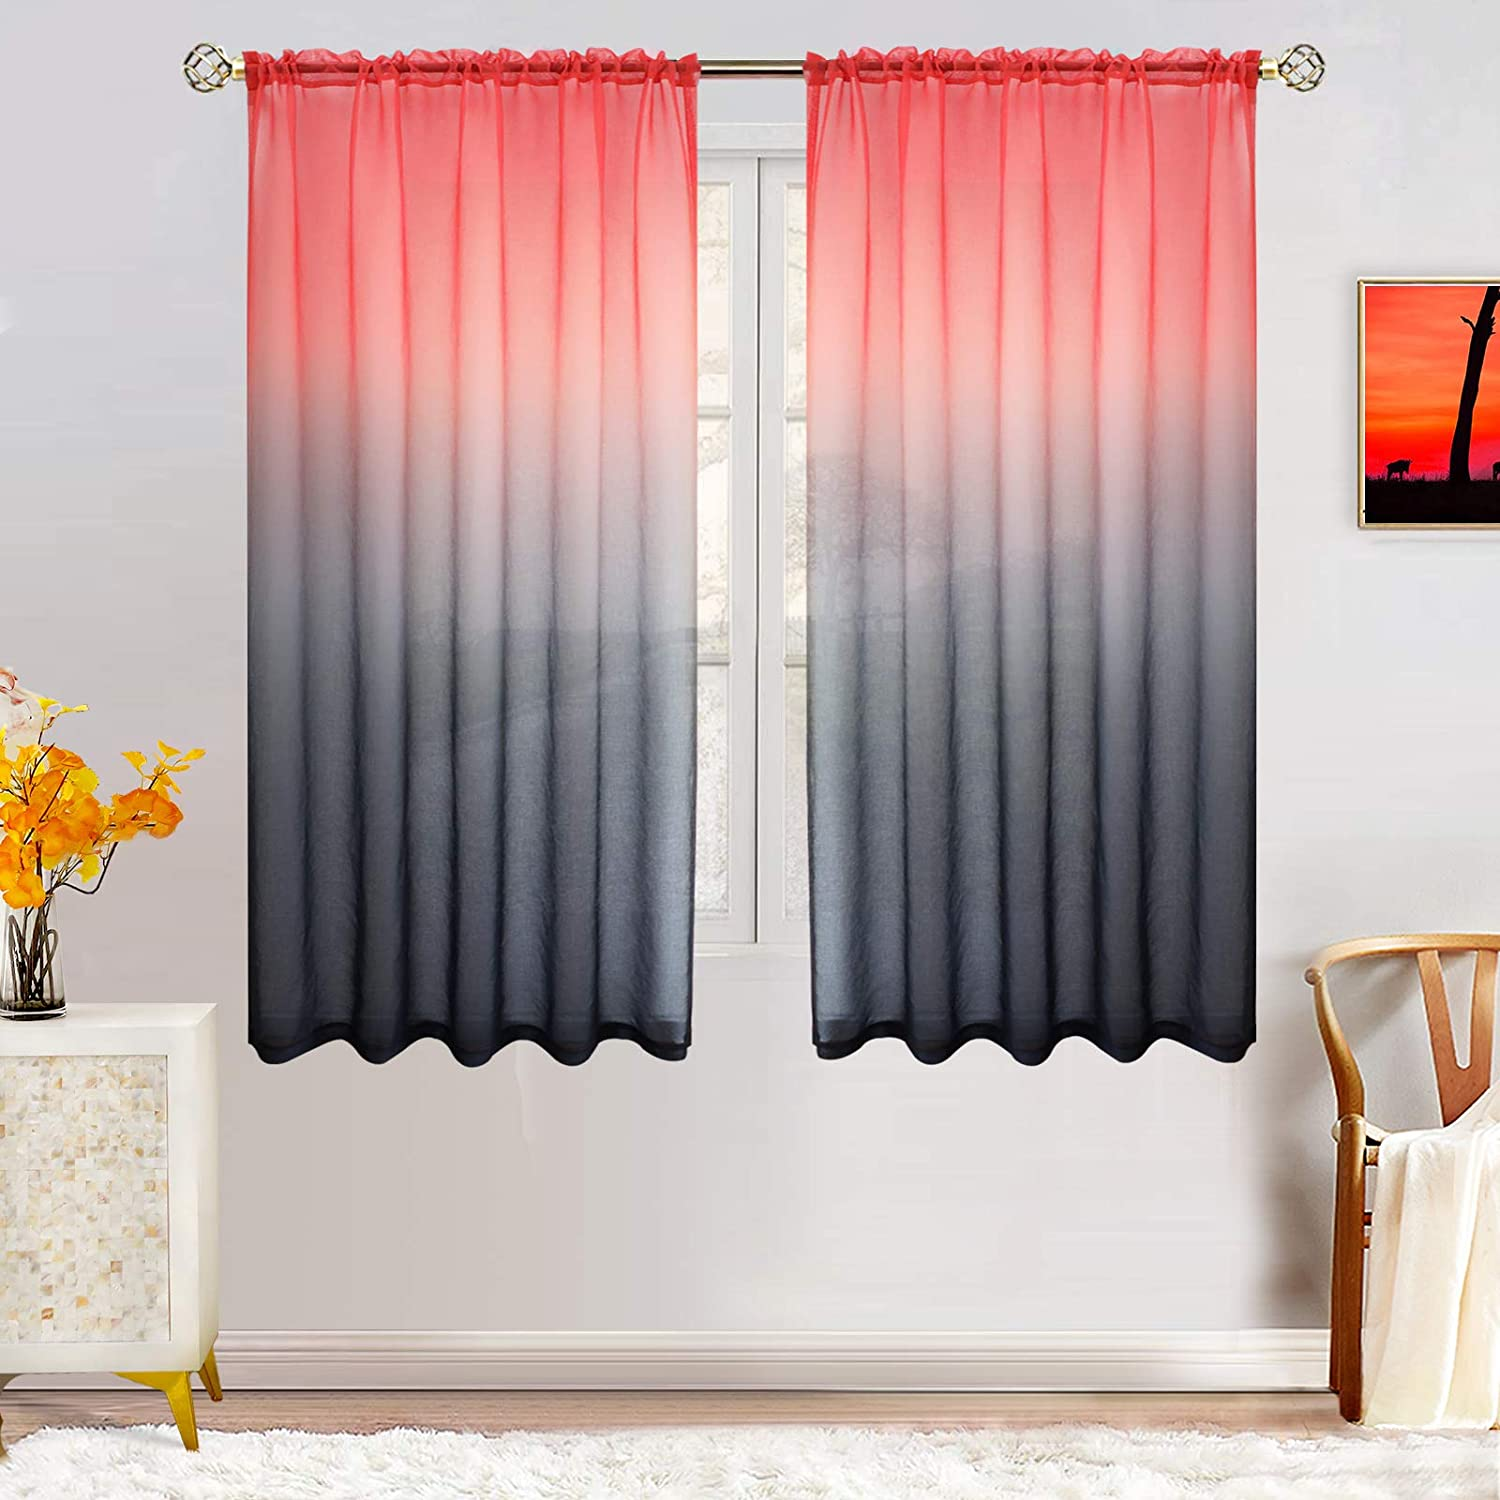 Faux Linen Ombre Sheer Curtains for Bedroom Girls Room Decor, Two Tone Curtain Drapes Light Filtering Semi Gradient Rod Pocket Window Panels for Living Room (2 Panels, 52 x 63 Inch, Red and Black)